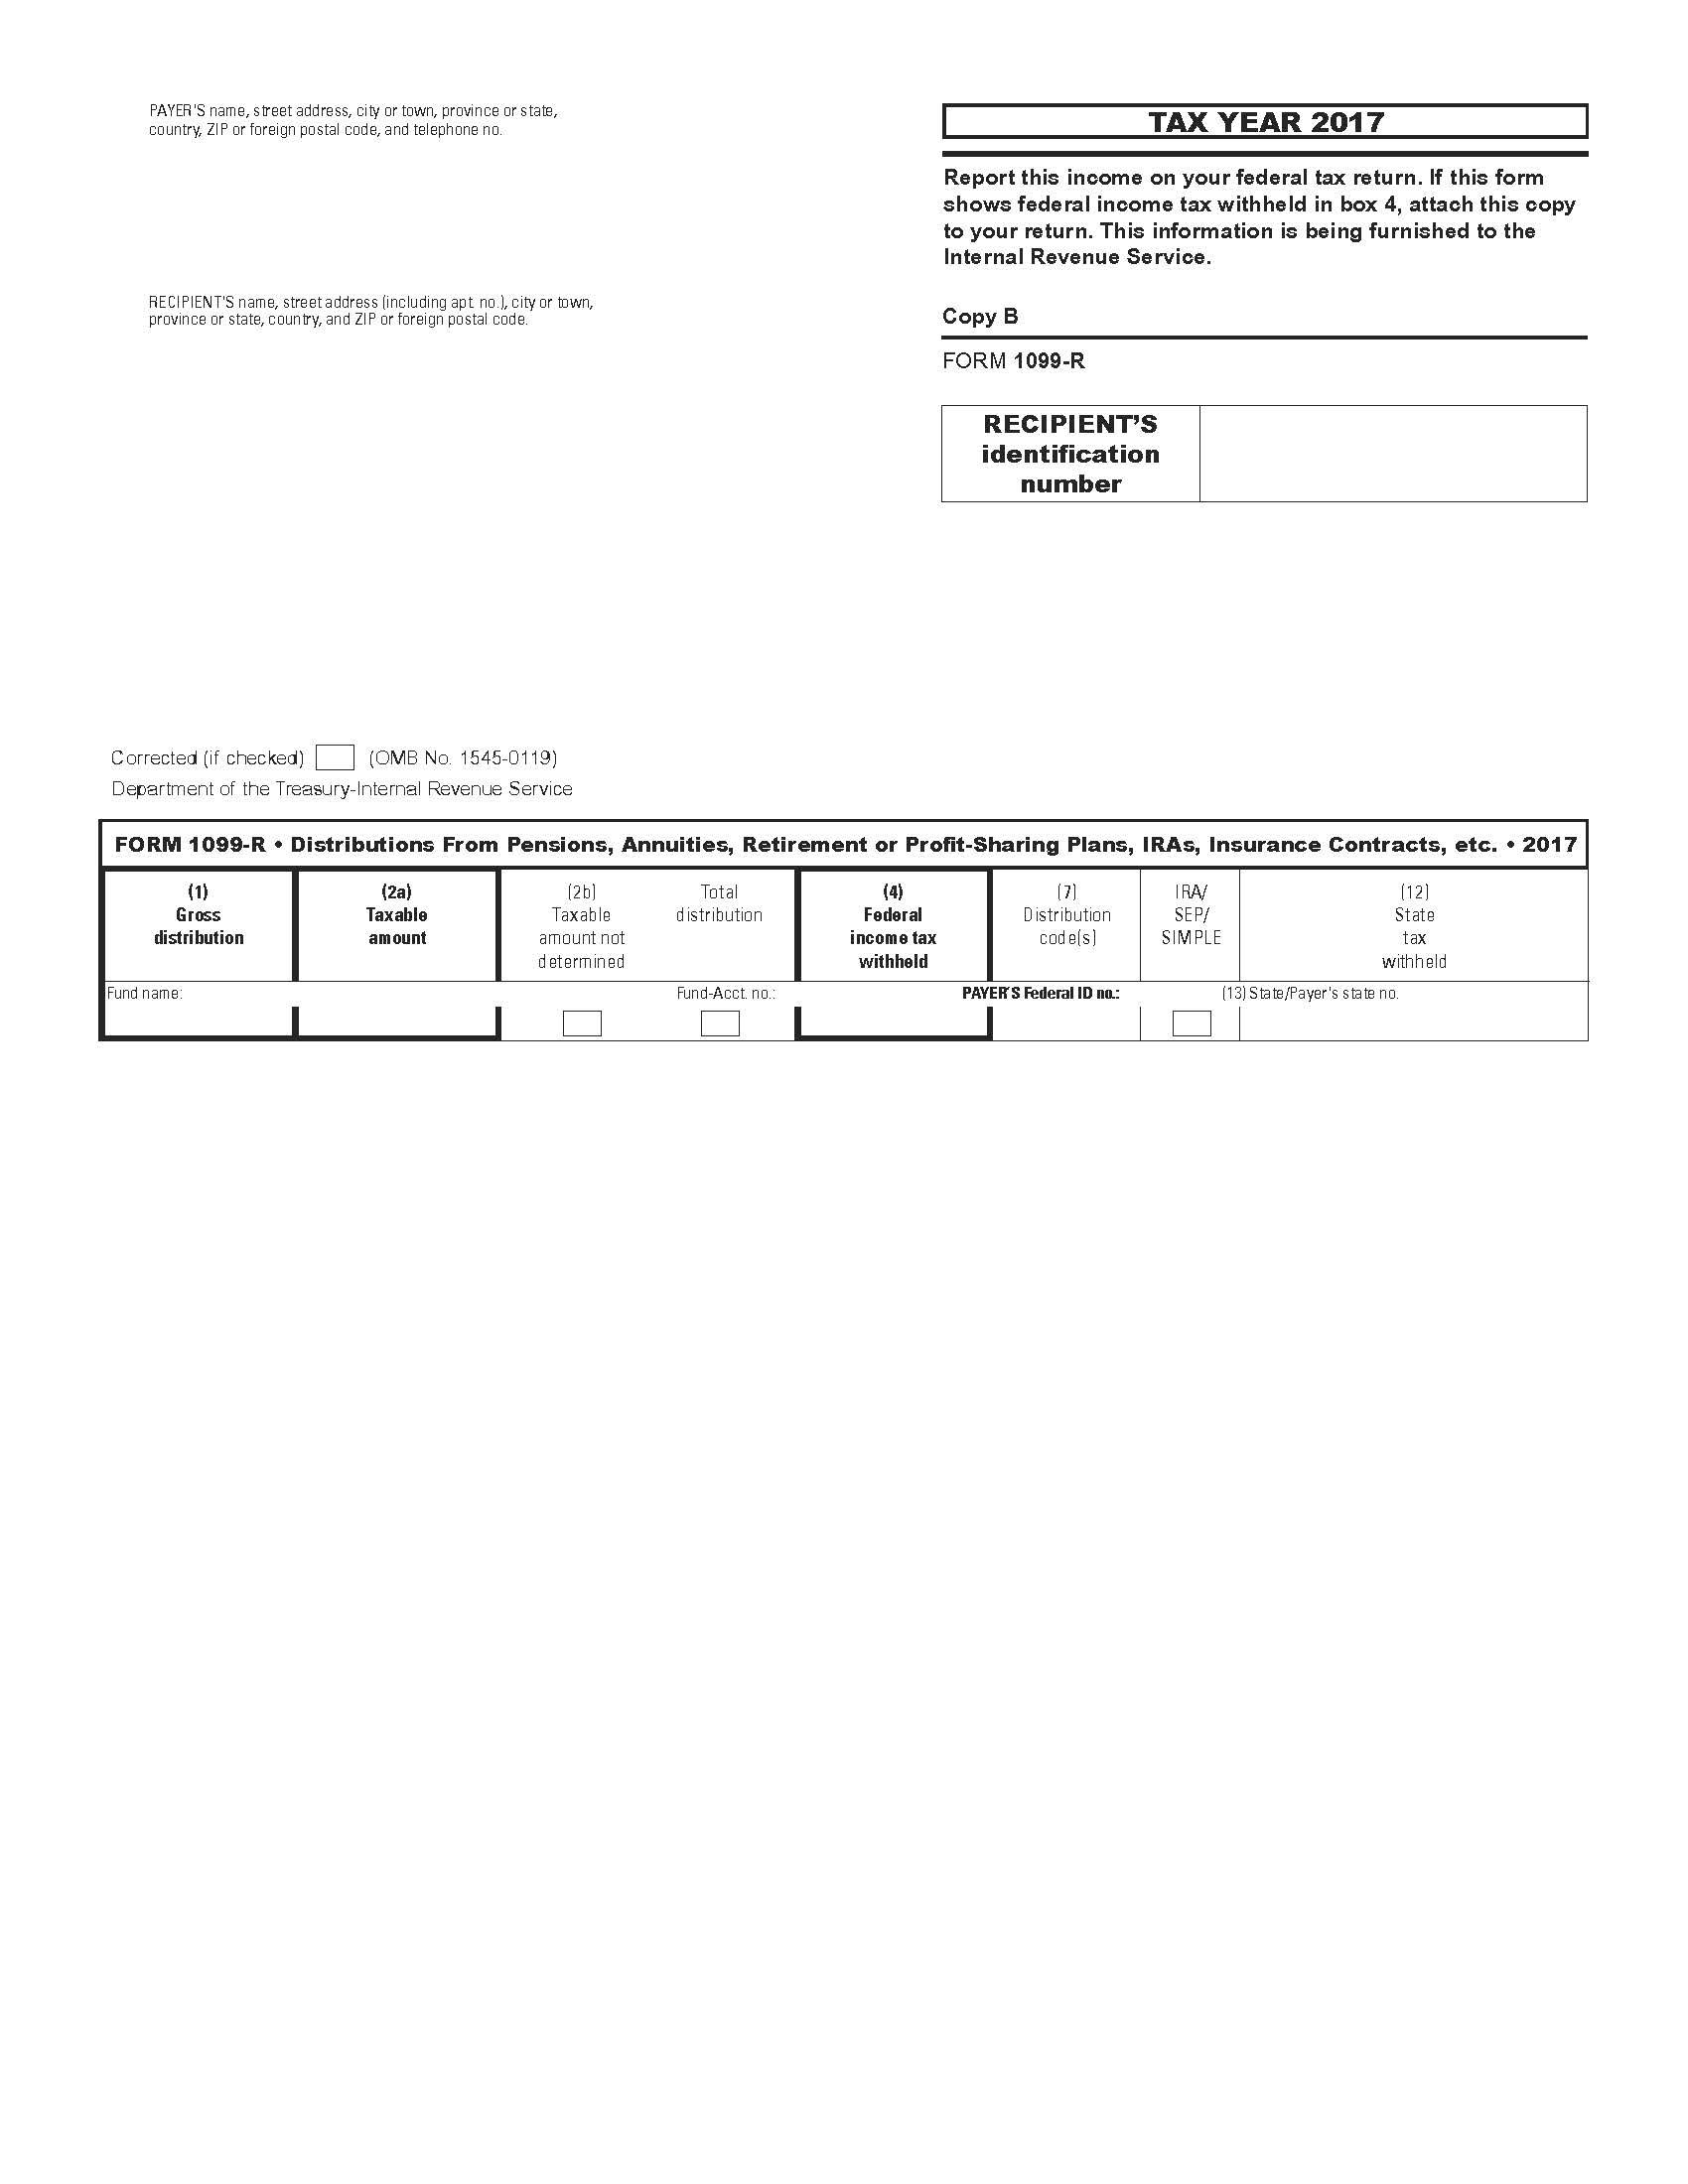 Us Income Tax Form 1099 R